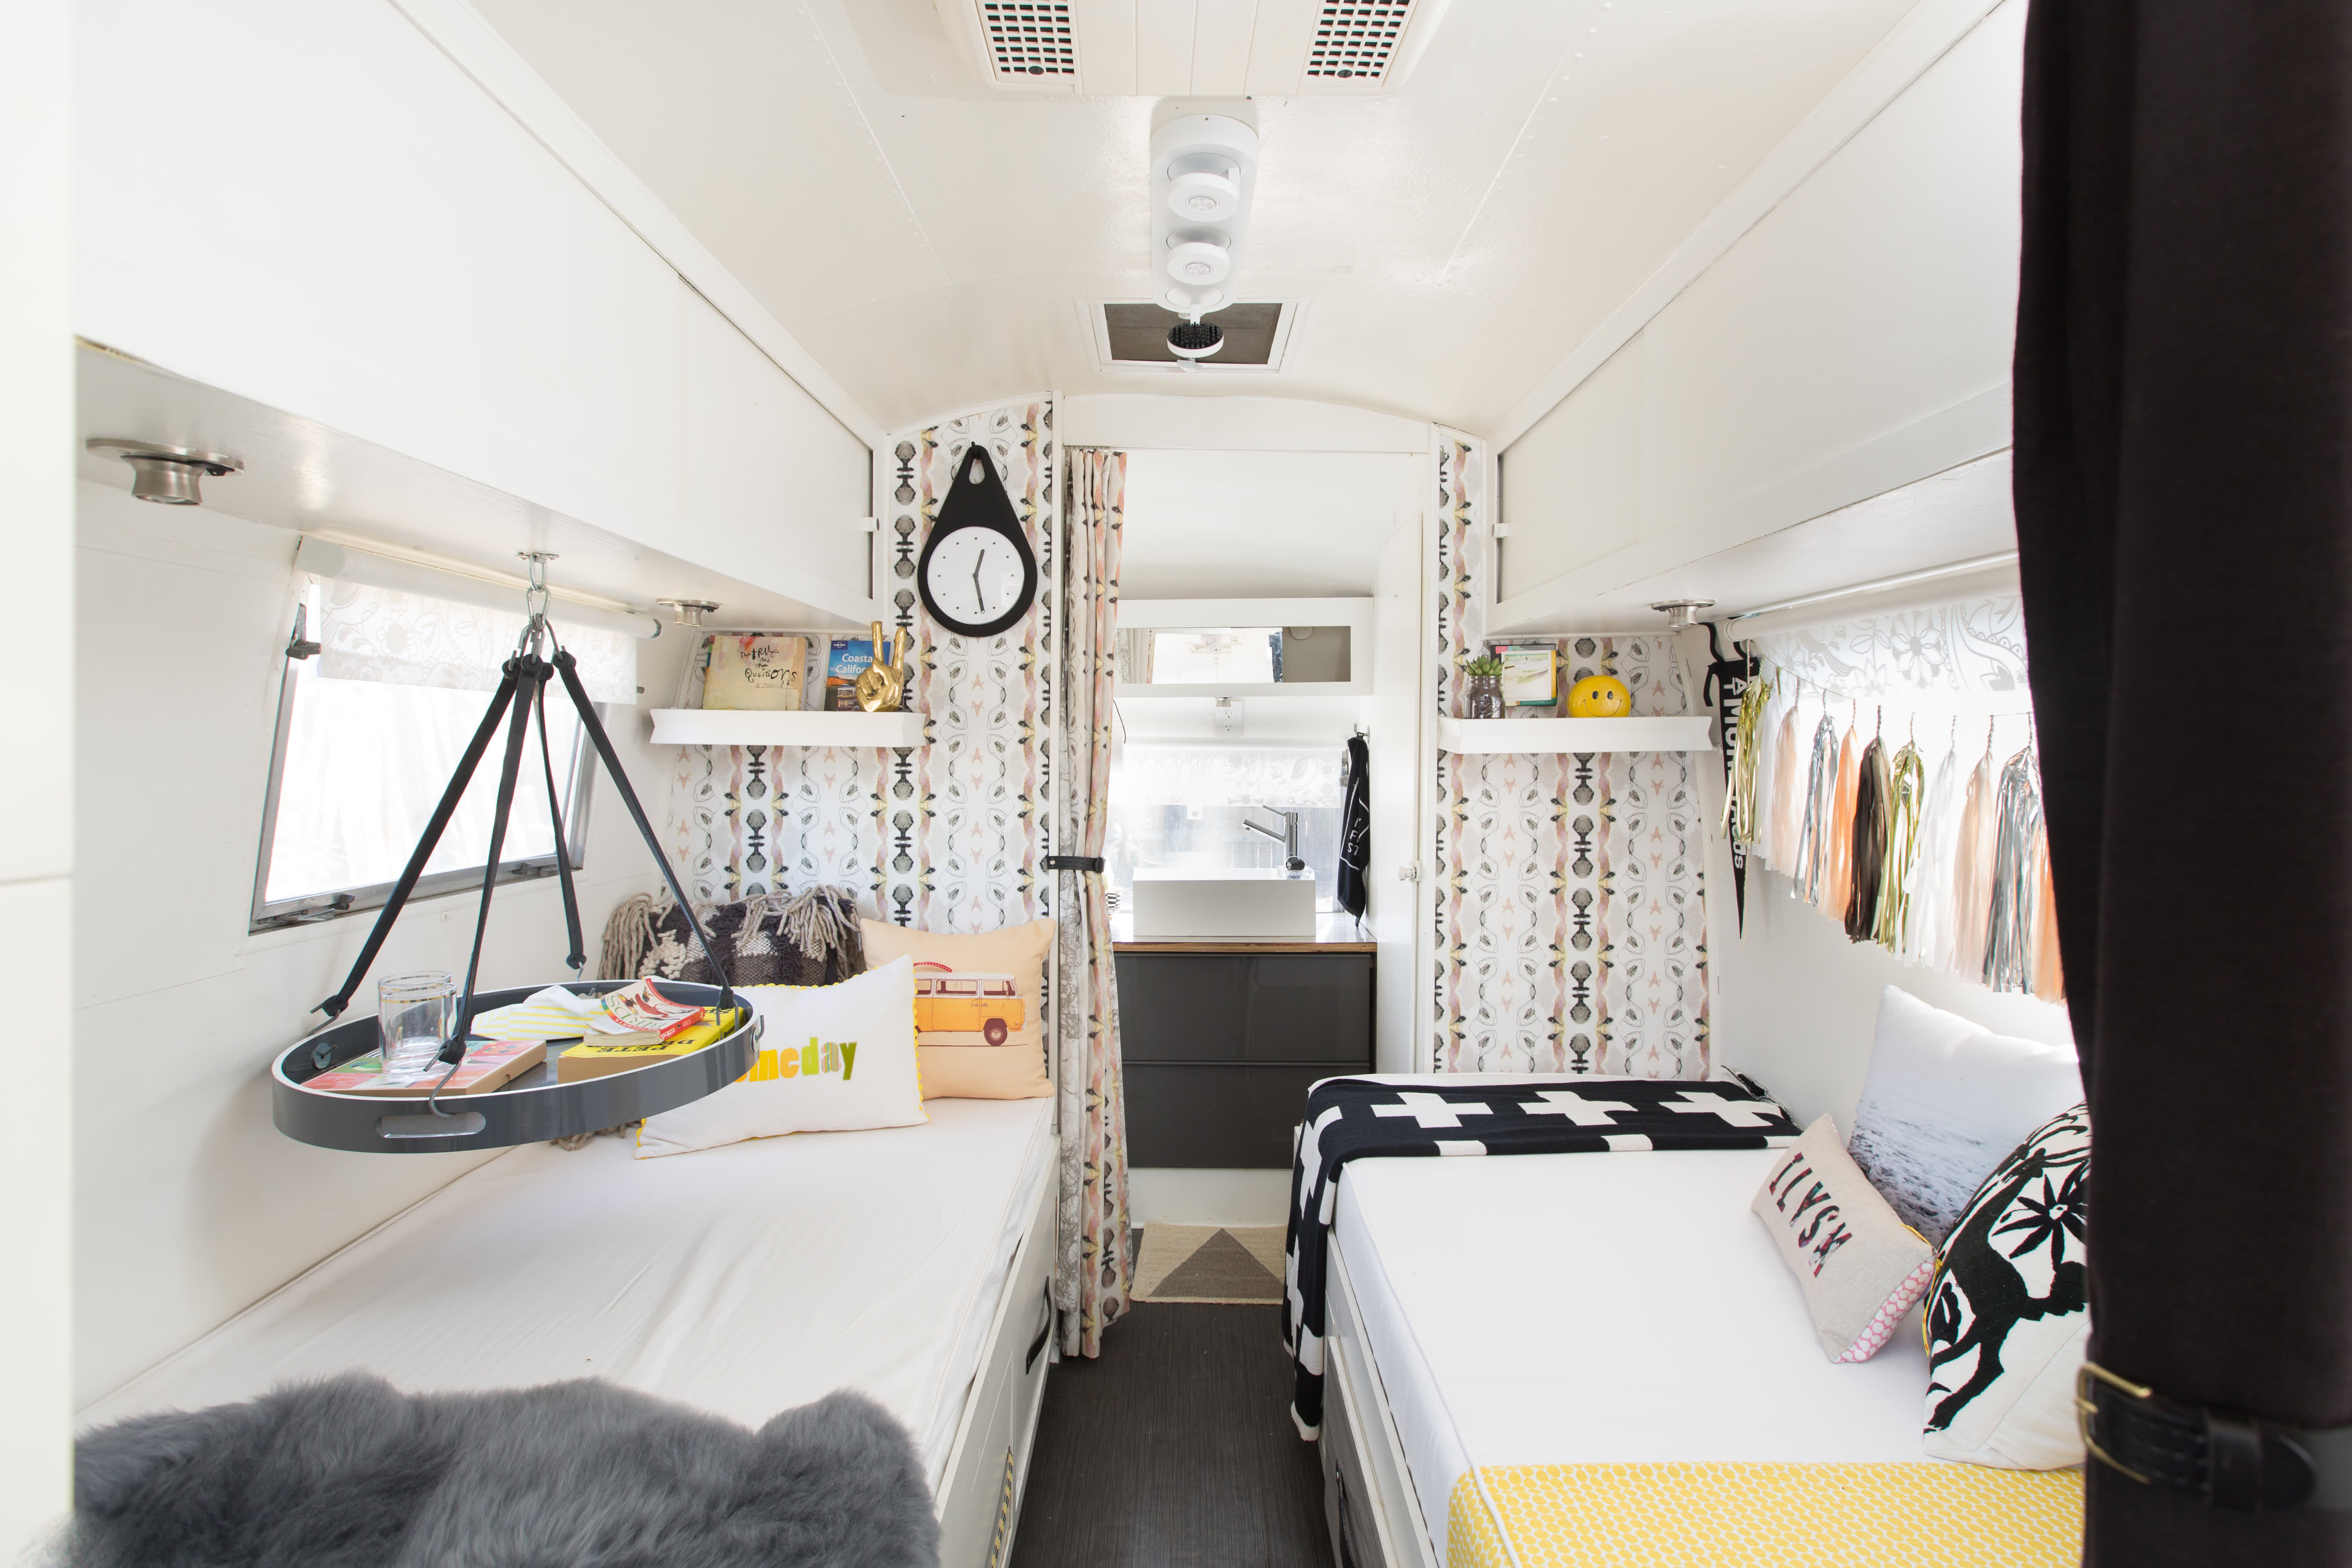 House Tour: A Vintage Airstream Finds Home in New Orleans